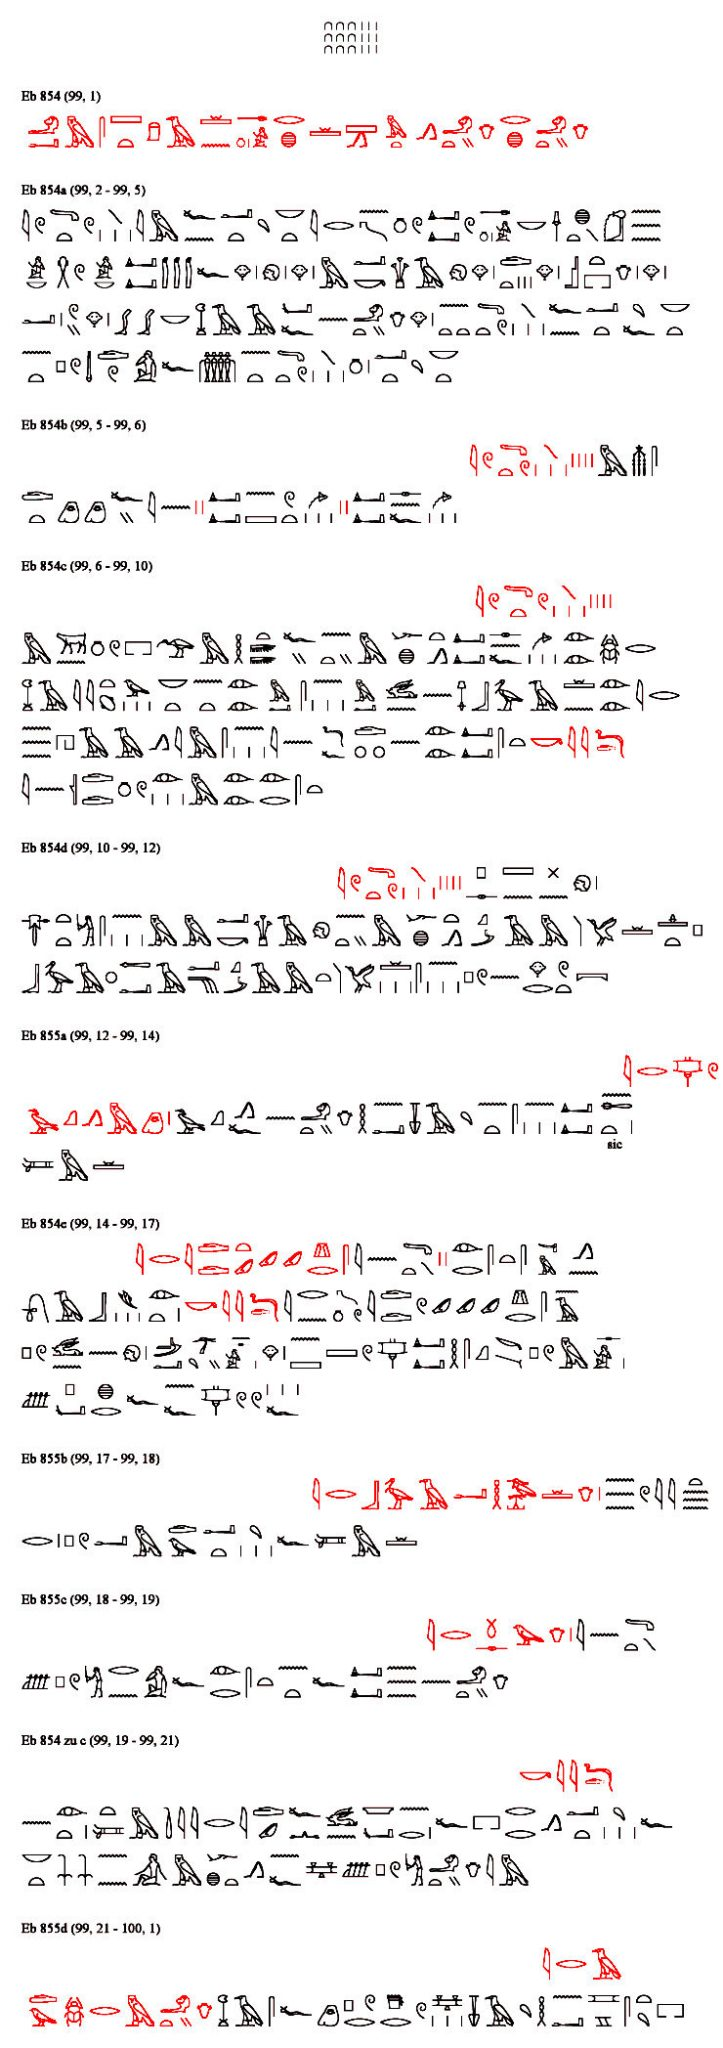 Papyrus Ebers, Hieroglyph Transliteration of Column 099 with the second part of the Kyphi Recipe.